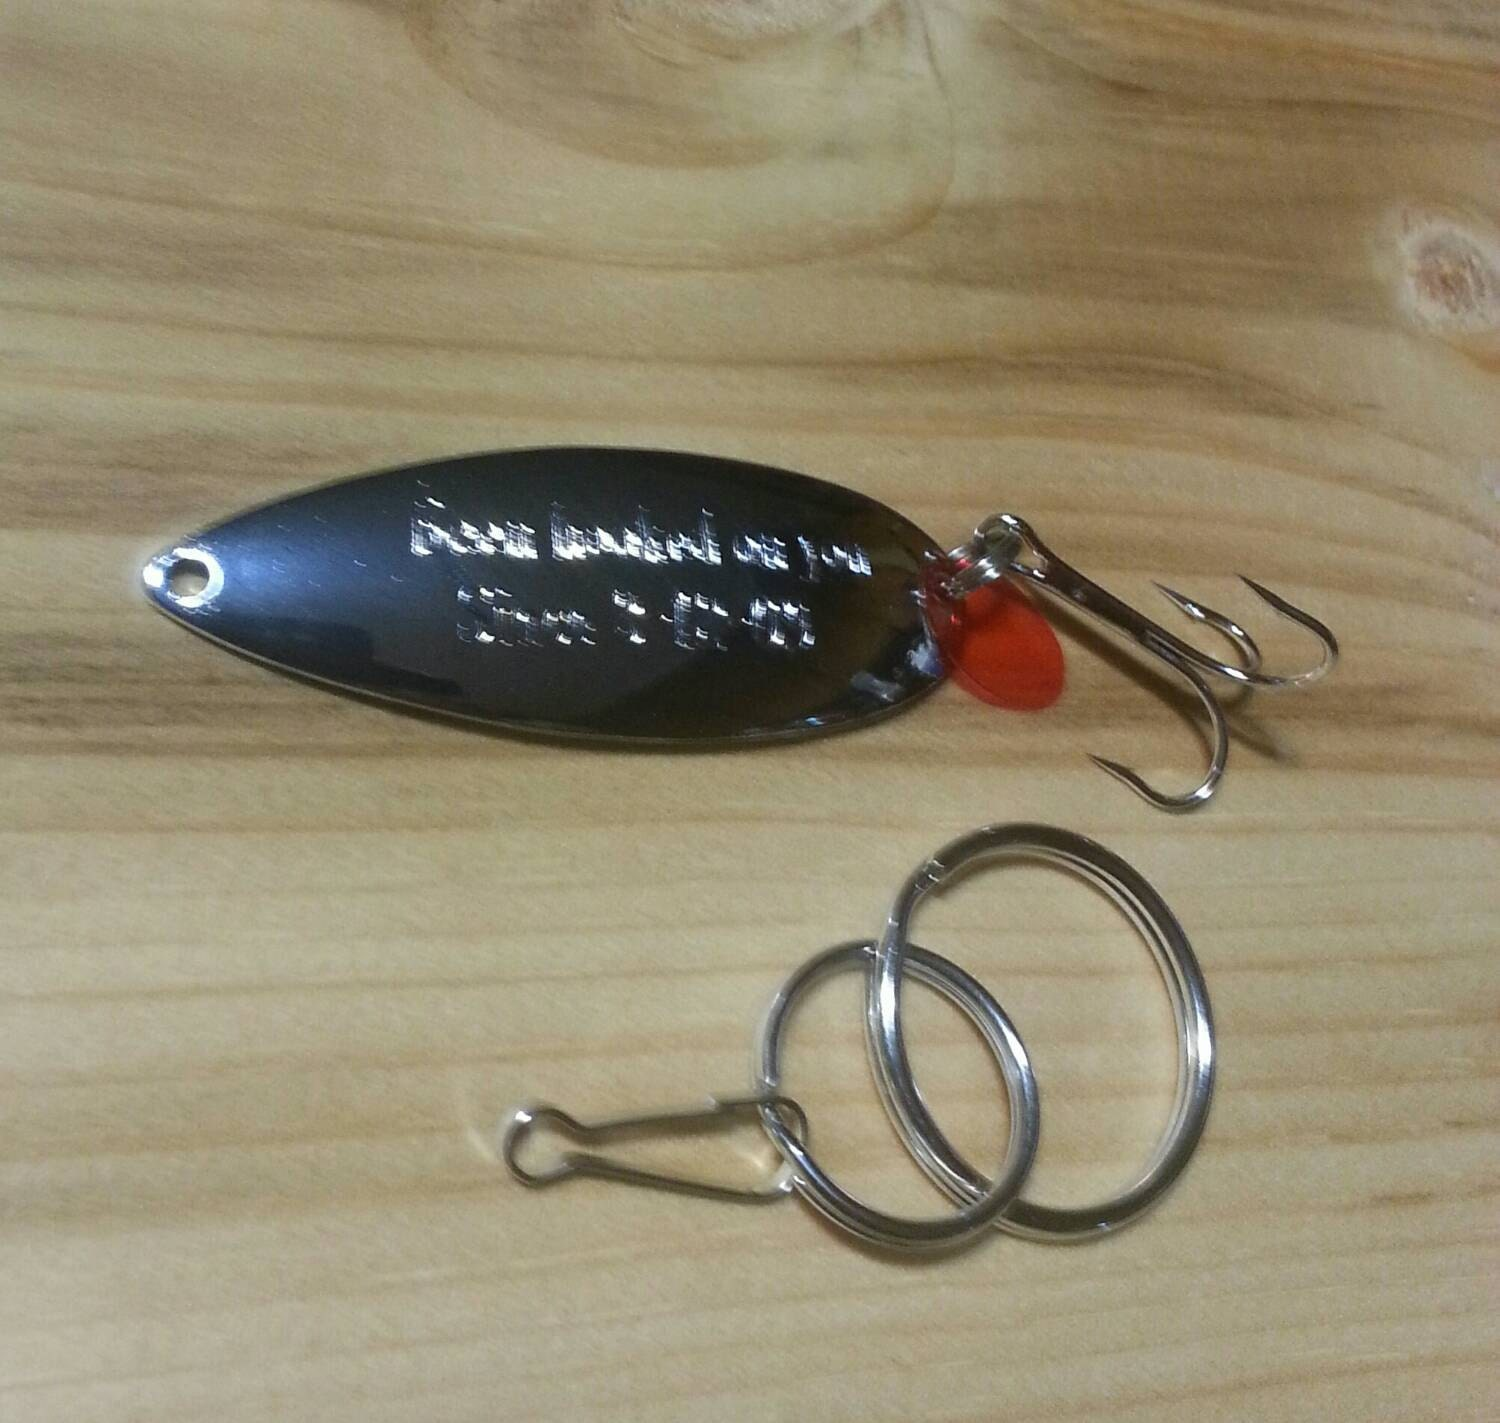 Real fishing lure name brand high quality by sportstradingpost for Names of fishing lures